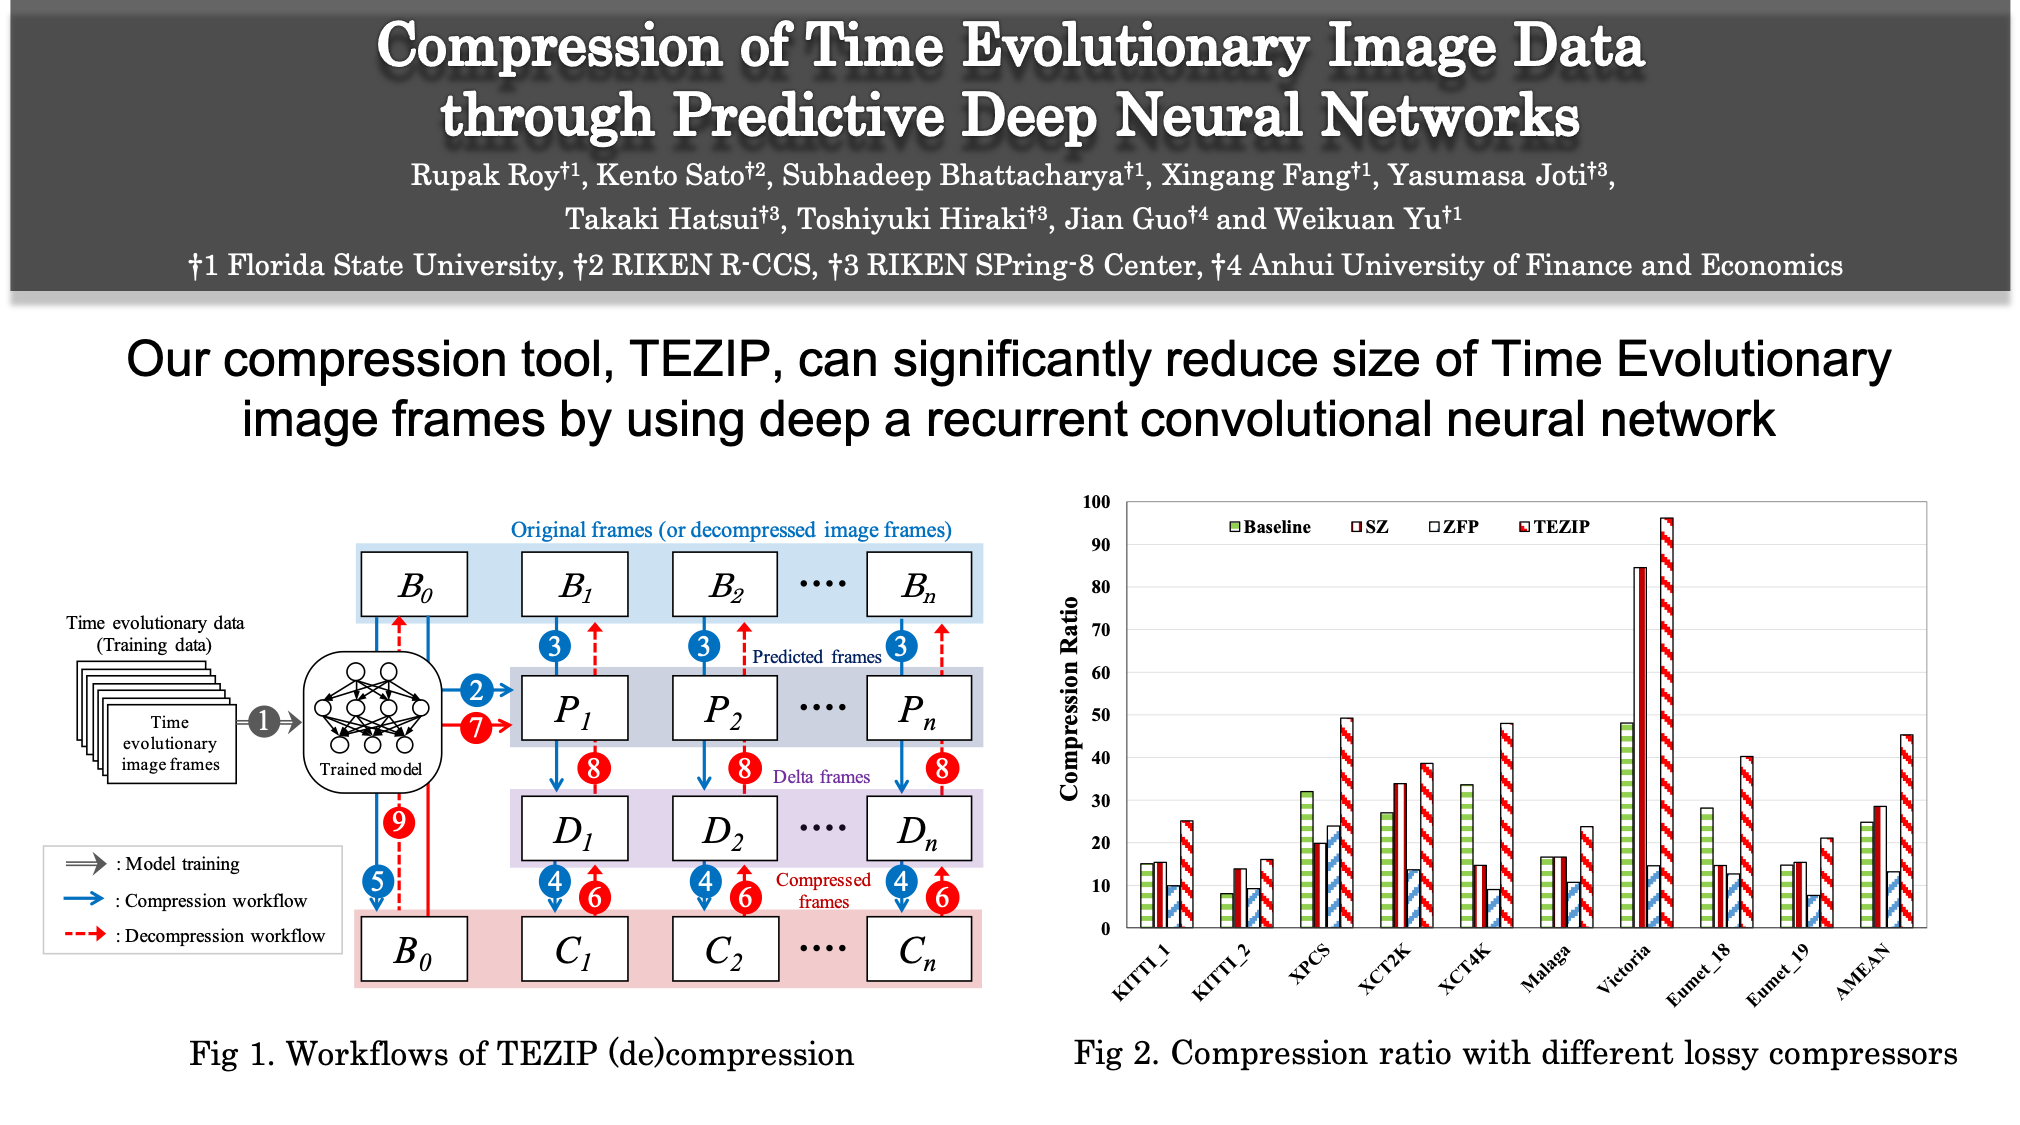 Compression of Time Evolutionary Image Data through Predictive Deep Neural Networks